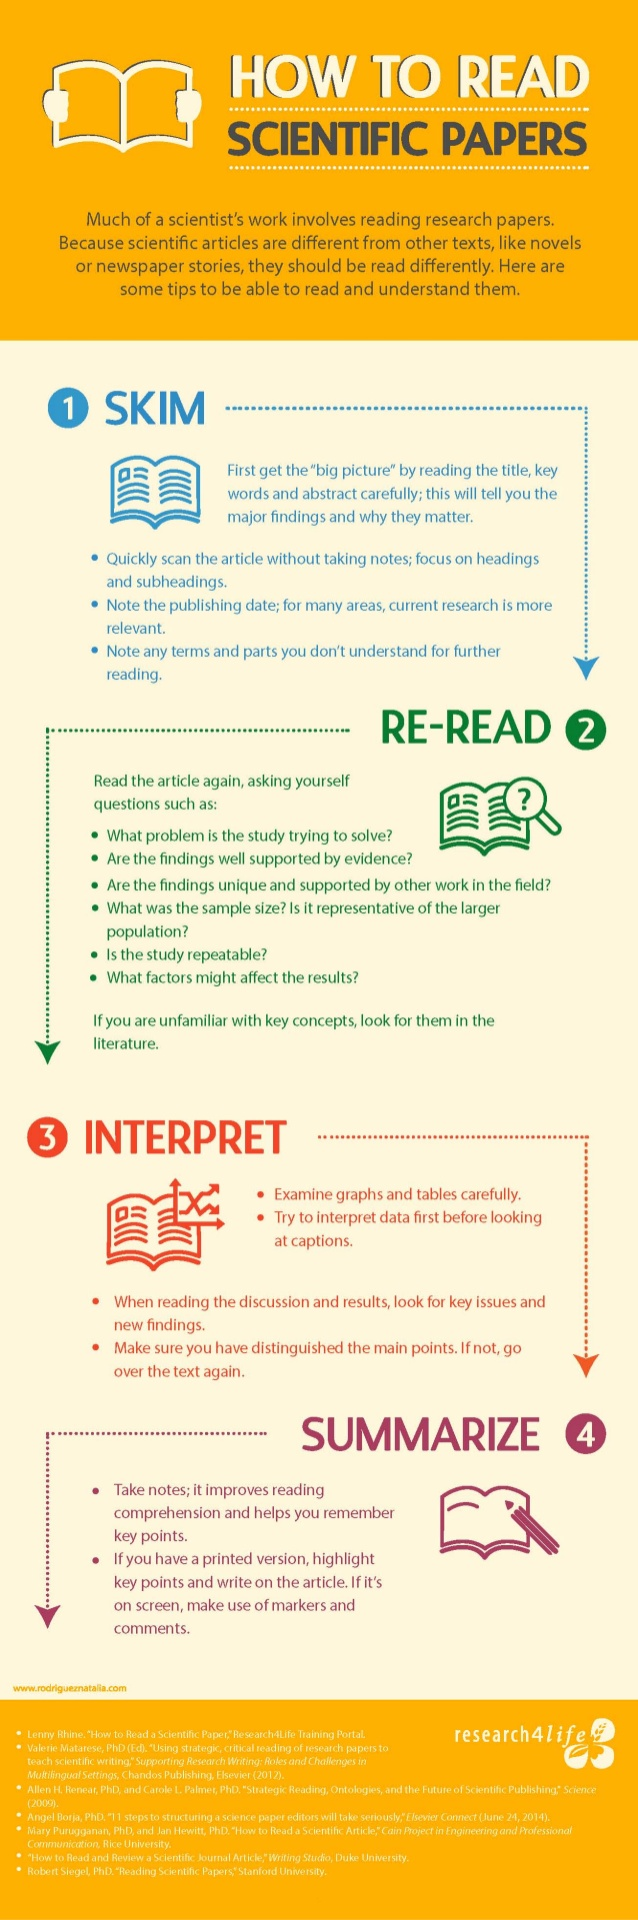 Ideas to Create Research Articles